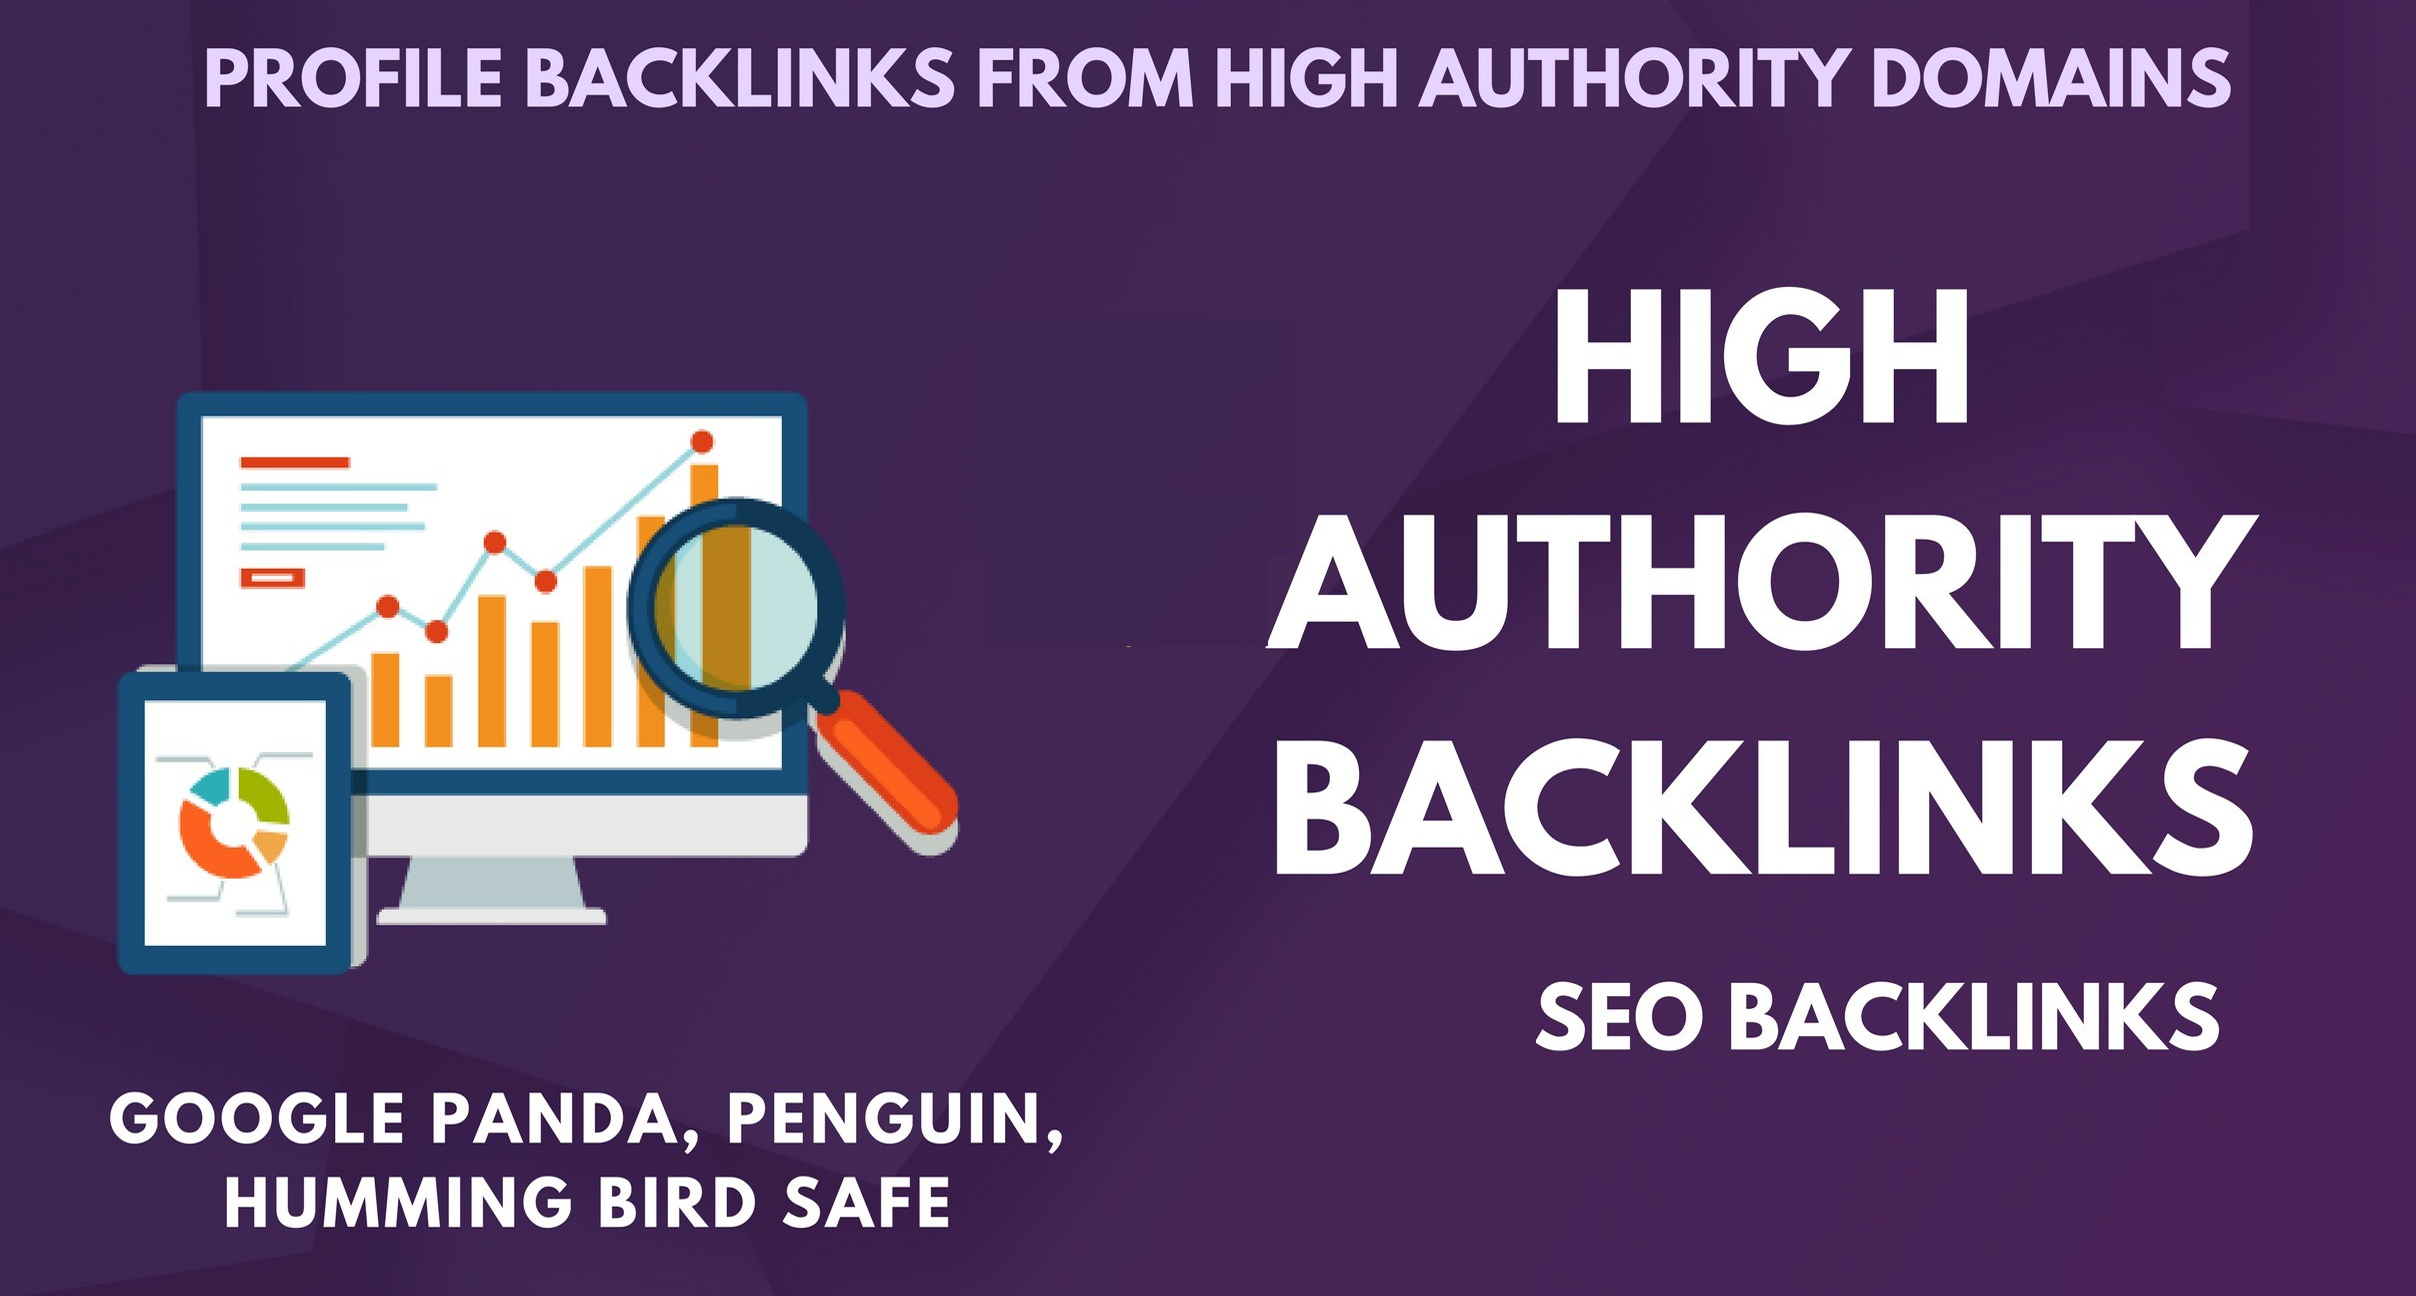 I will create 50 manual white hat authority backlinks for google ranking